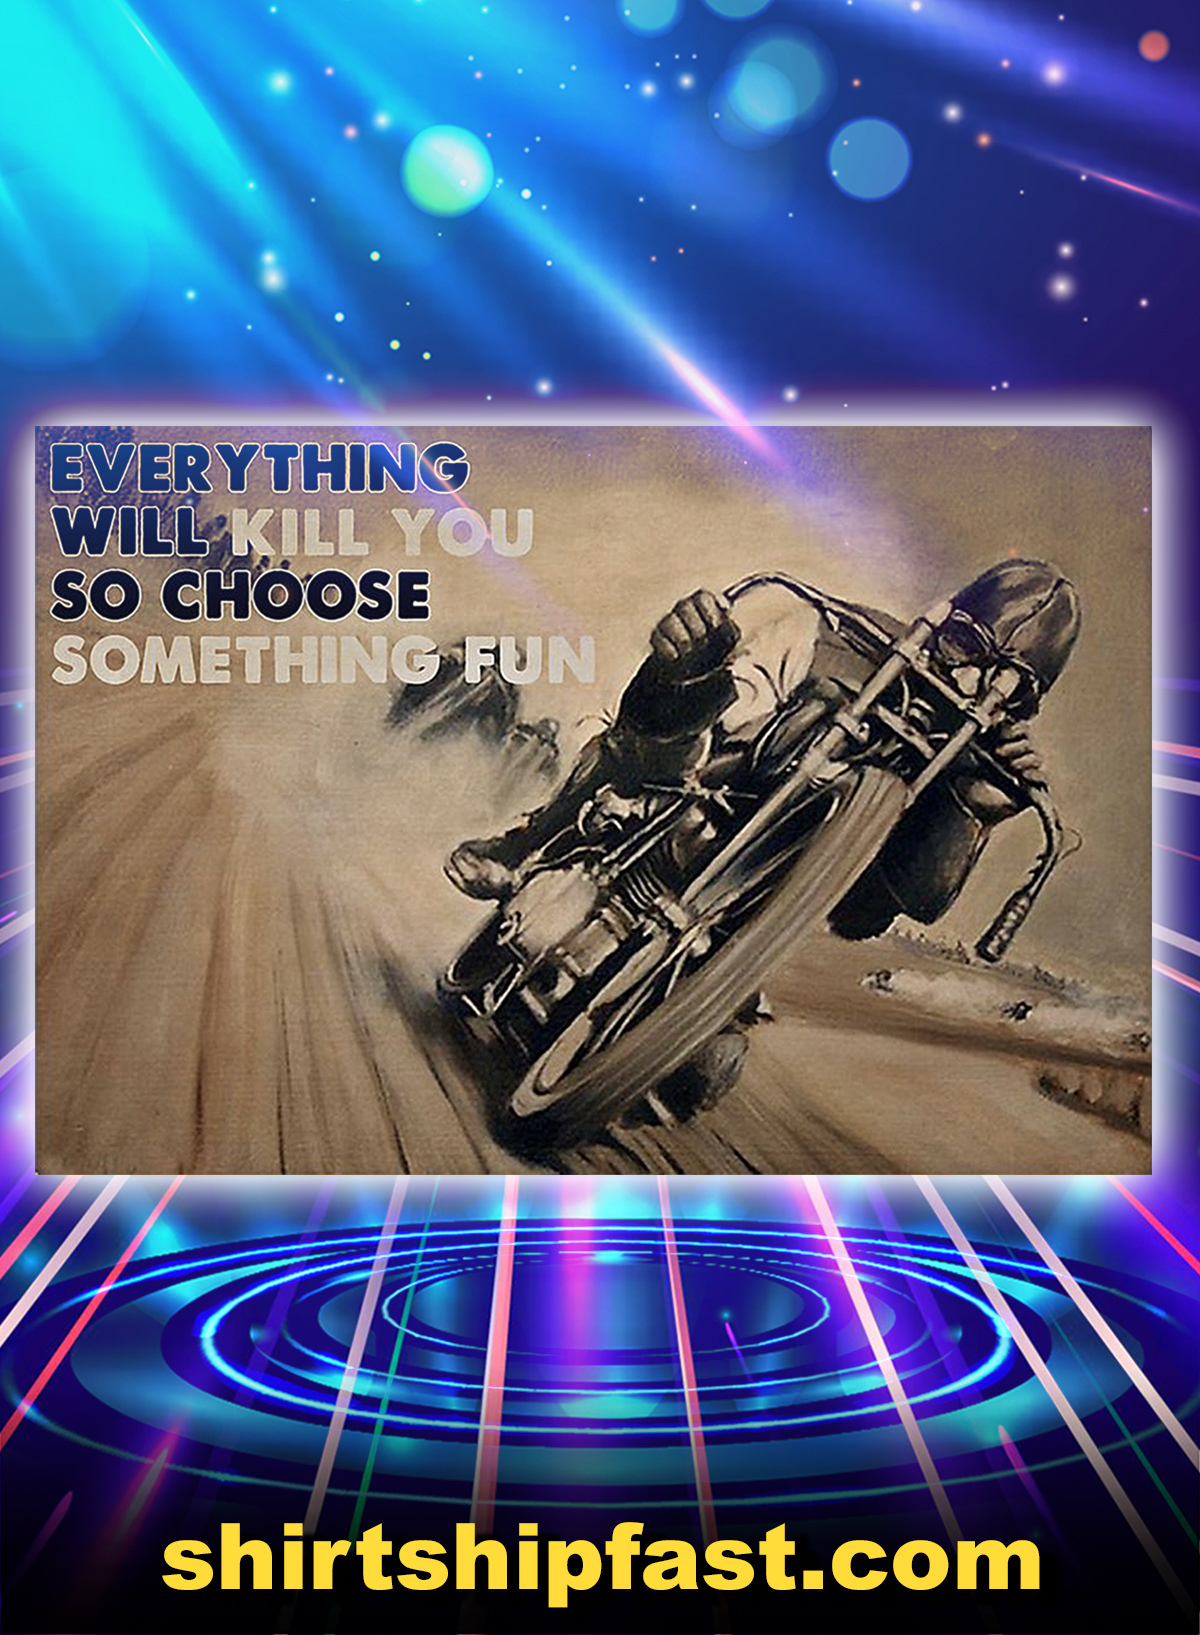 Motorbike racing everything will kill you so choose something fun poster - A1